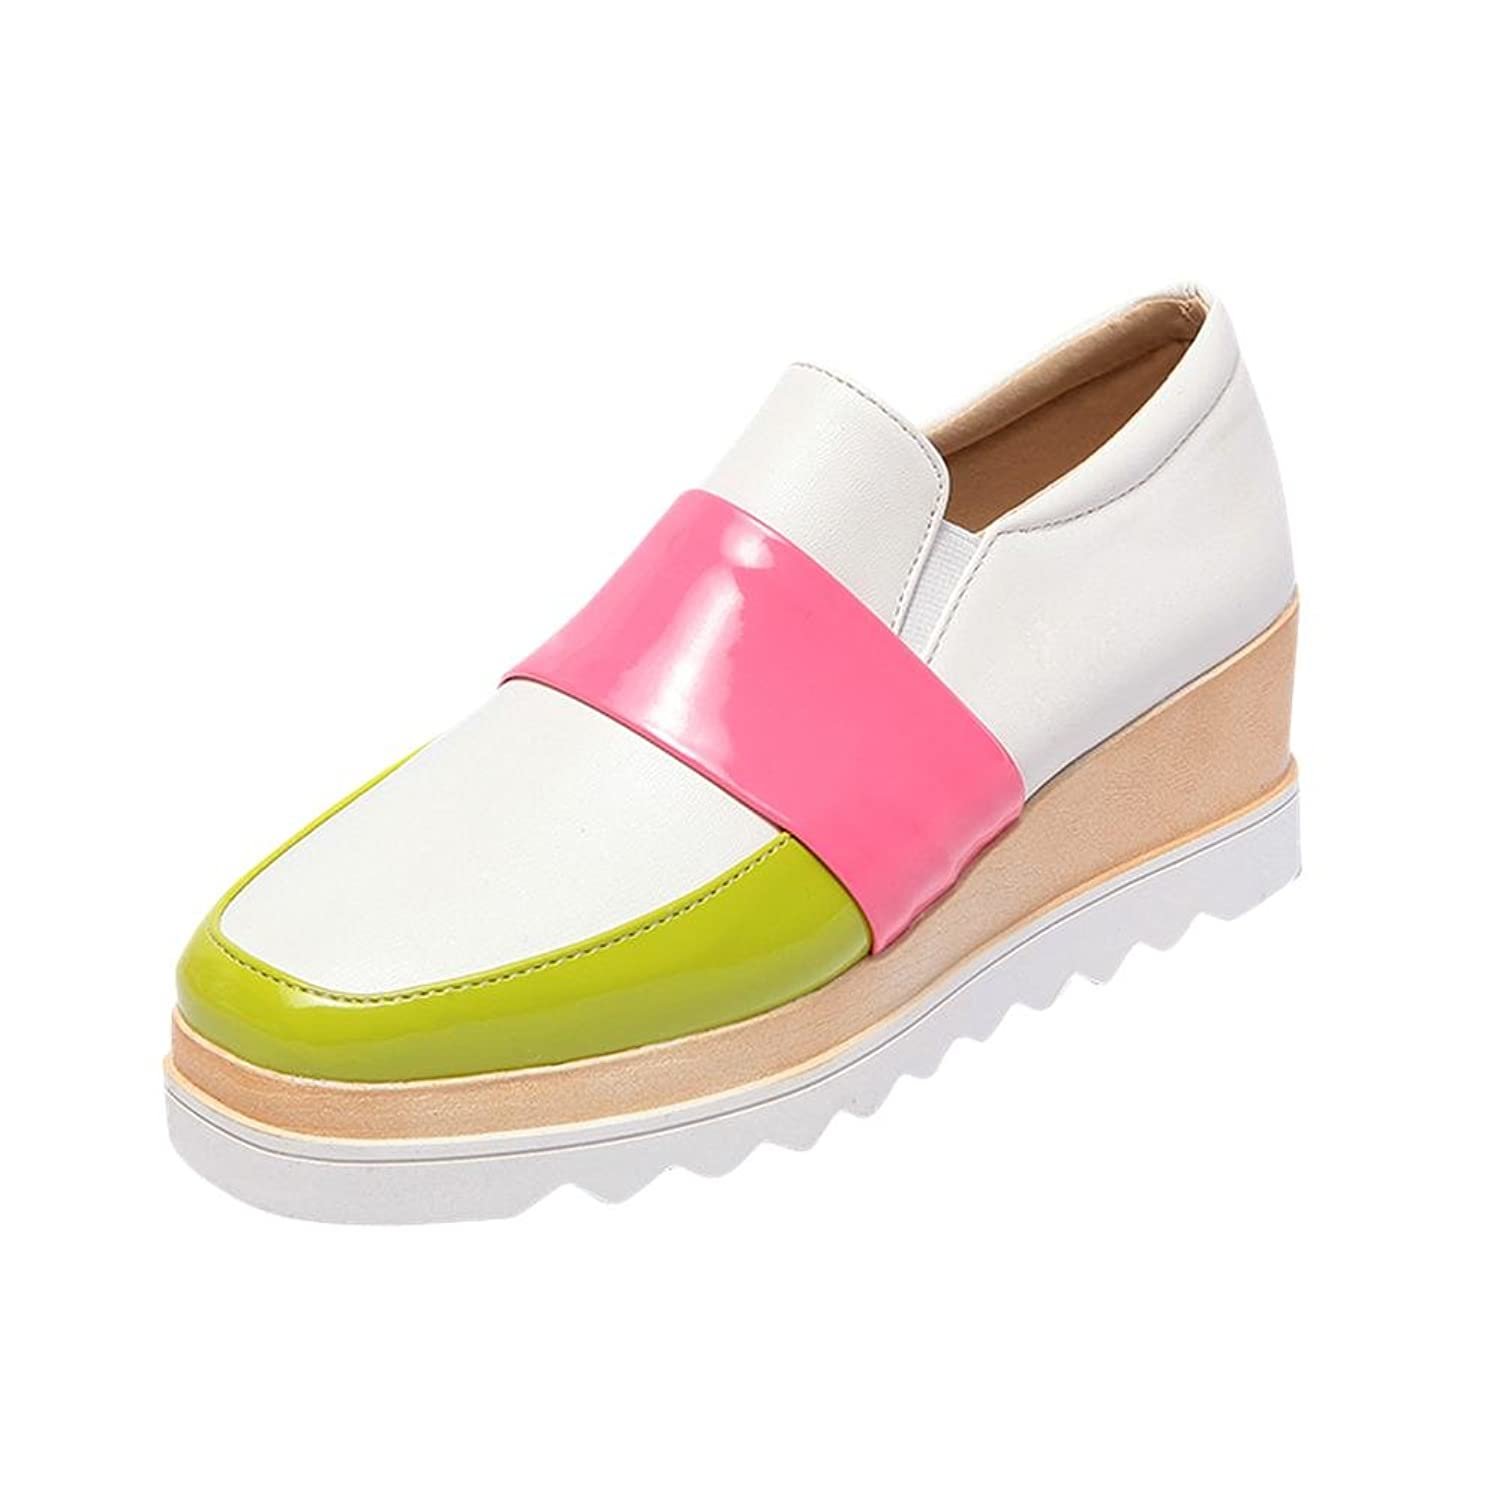 Carolbar Women's Assorted Colors Sweet Fashion Cute Lovely Wedge Heel Casual Shoes